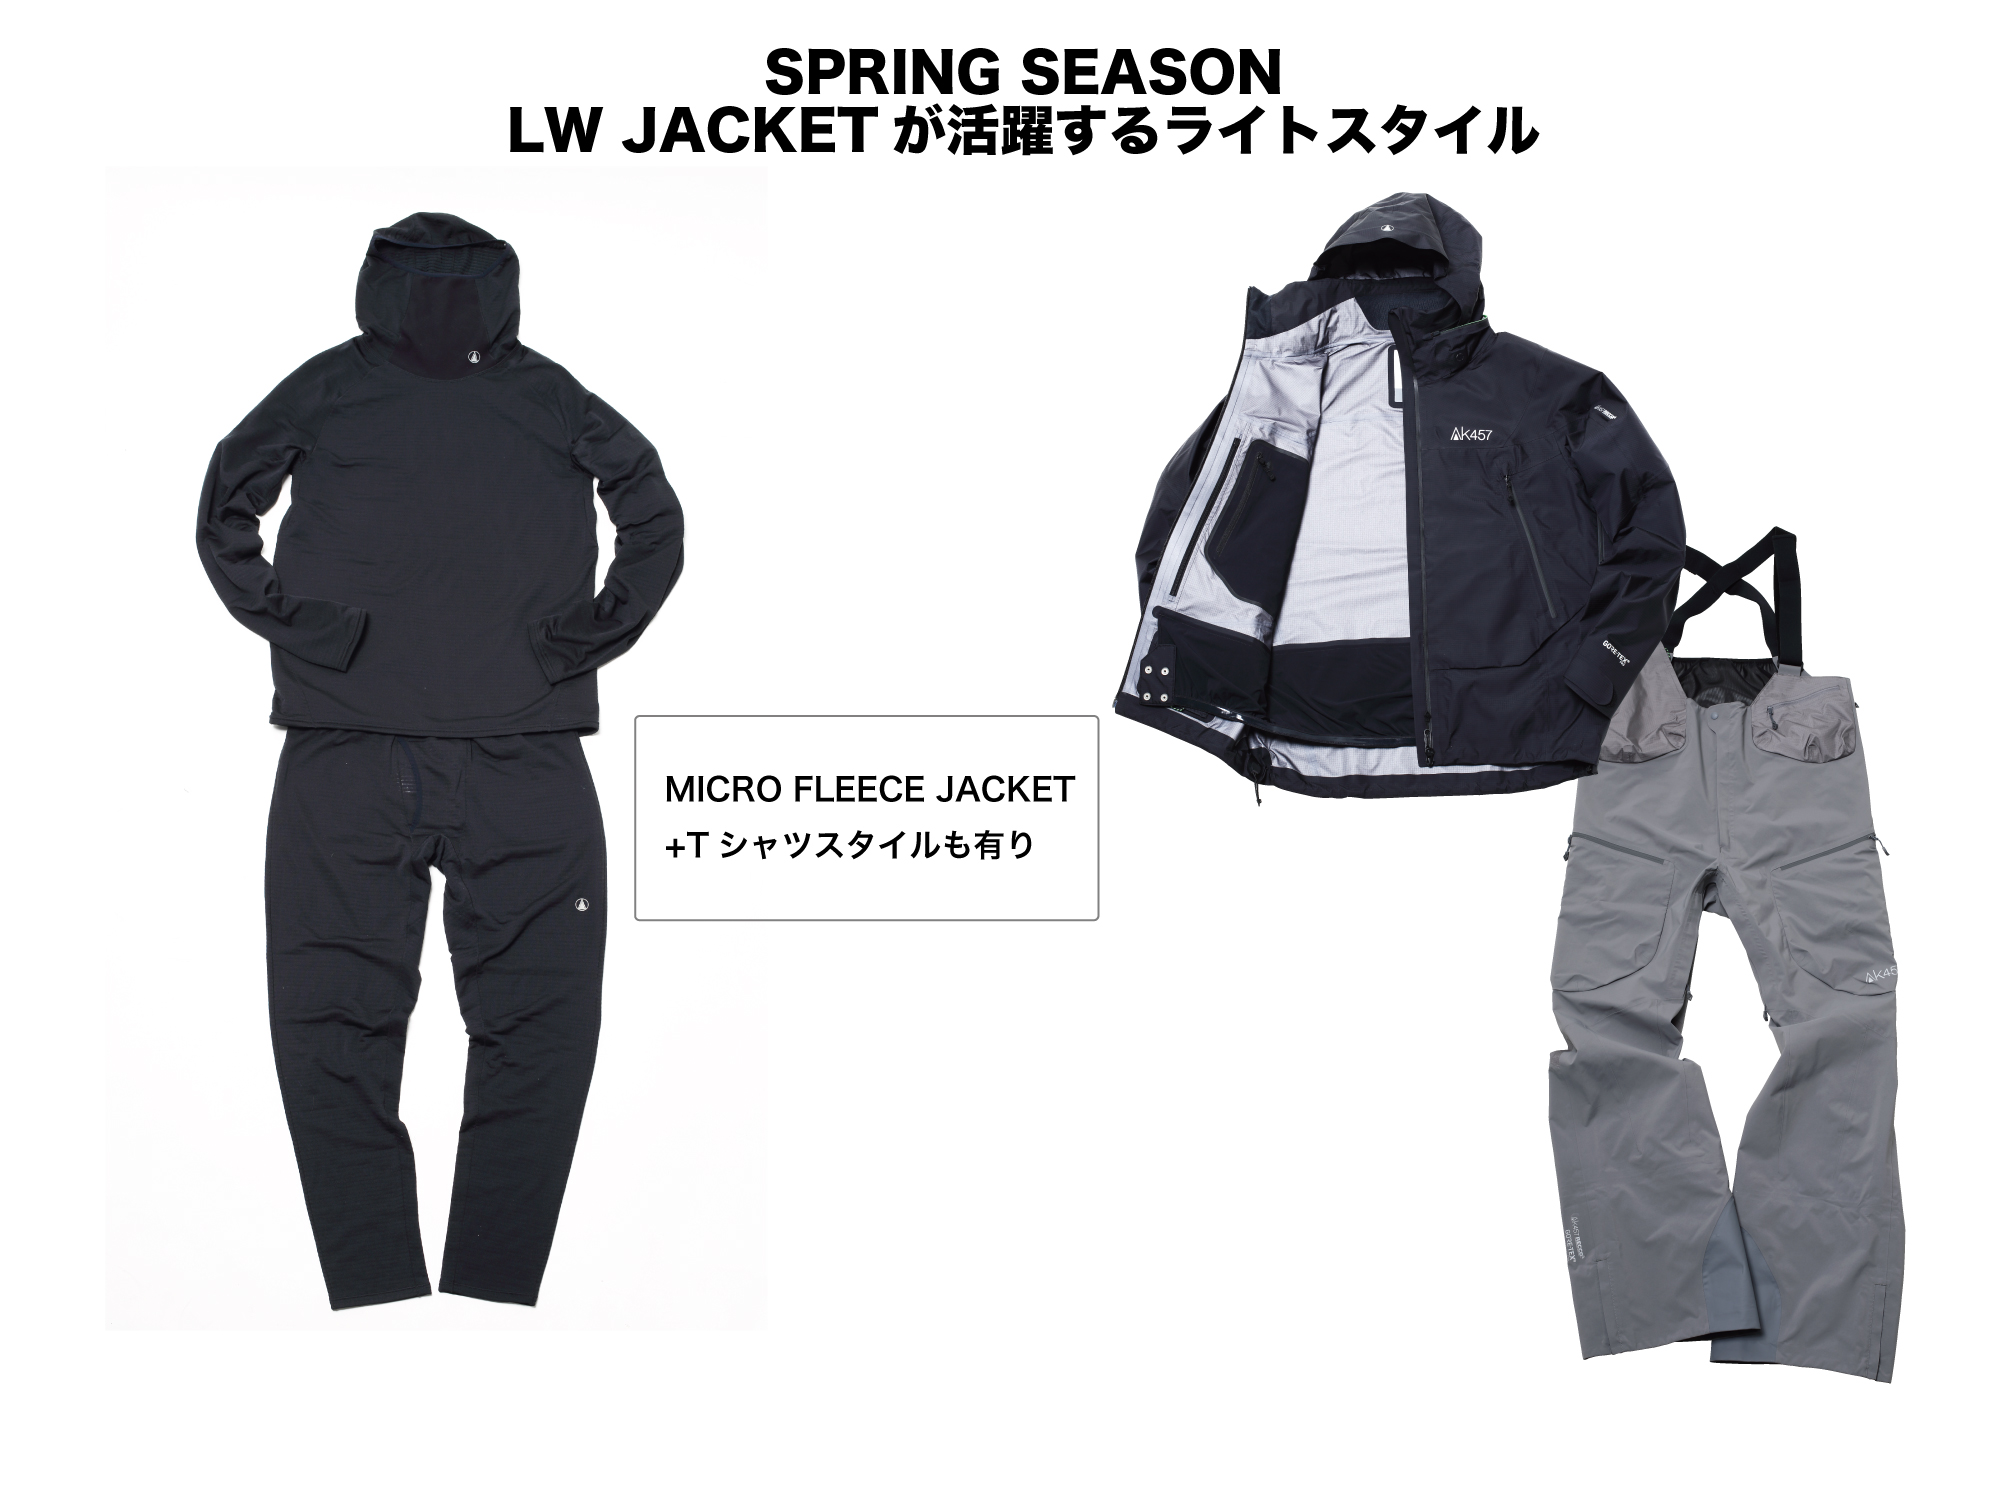 (上)(INNER)BASE LAYER HI NECK FLEECE:¥18,000 (OUTER)LW JACKET:¥79,000 (下)(INNER)BASE LAYER PANT FLEECE:¥16,000 (OUTER)HI-TOP PANT:¥79,000